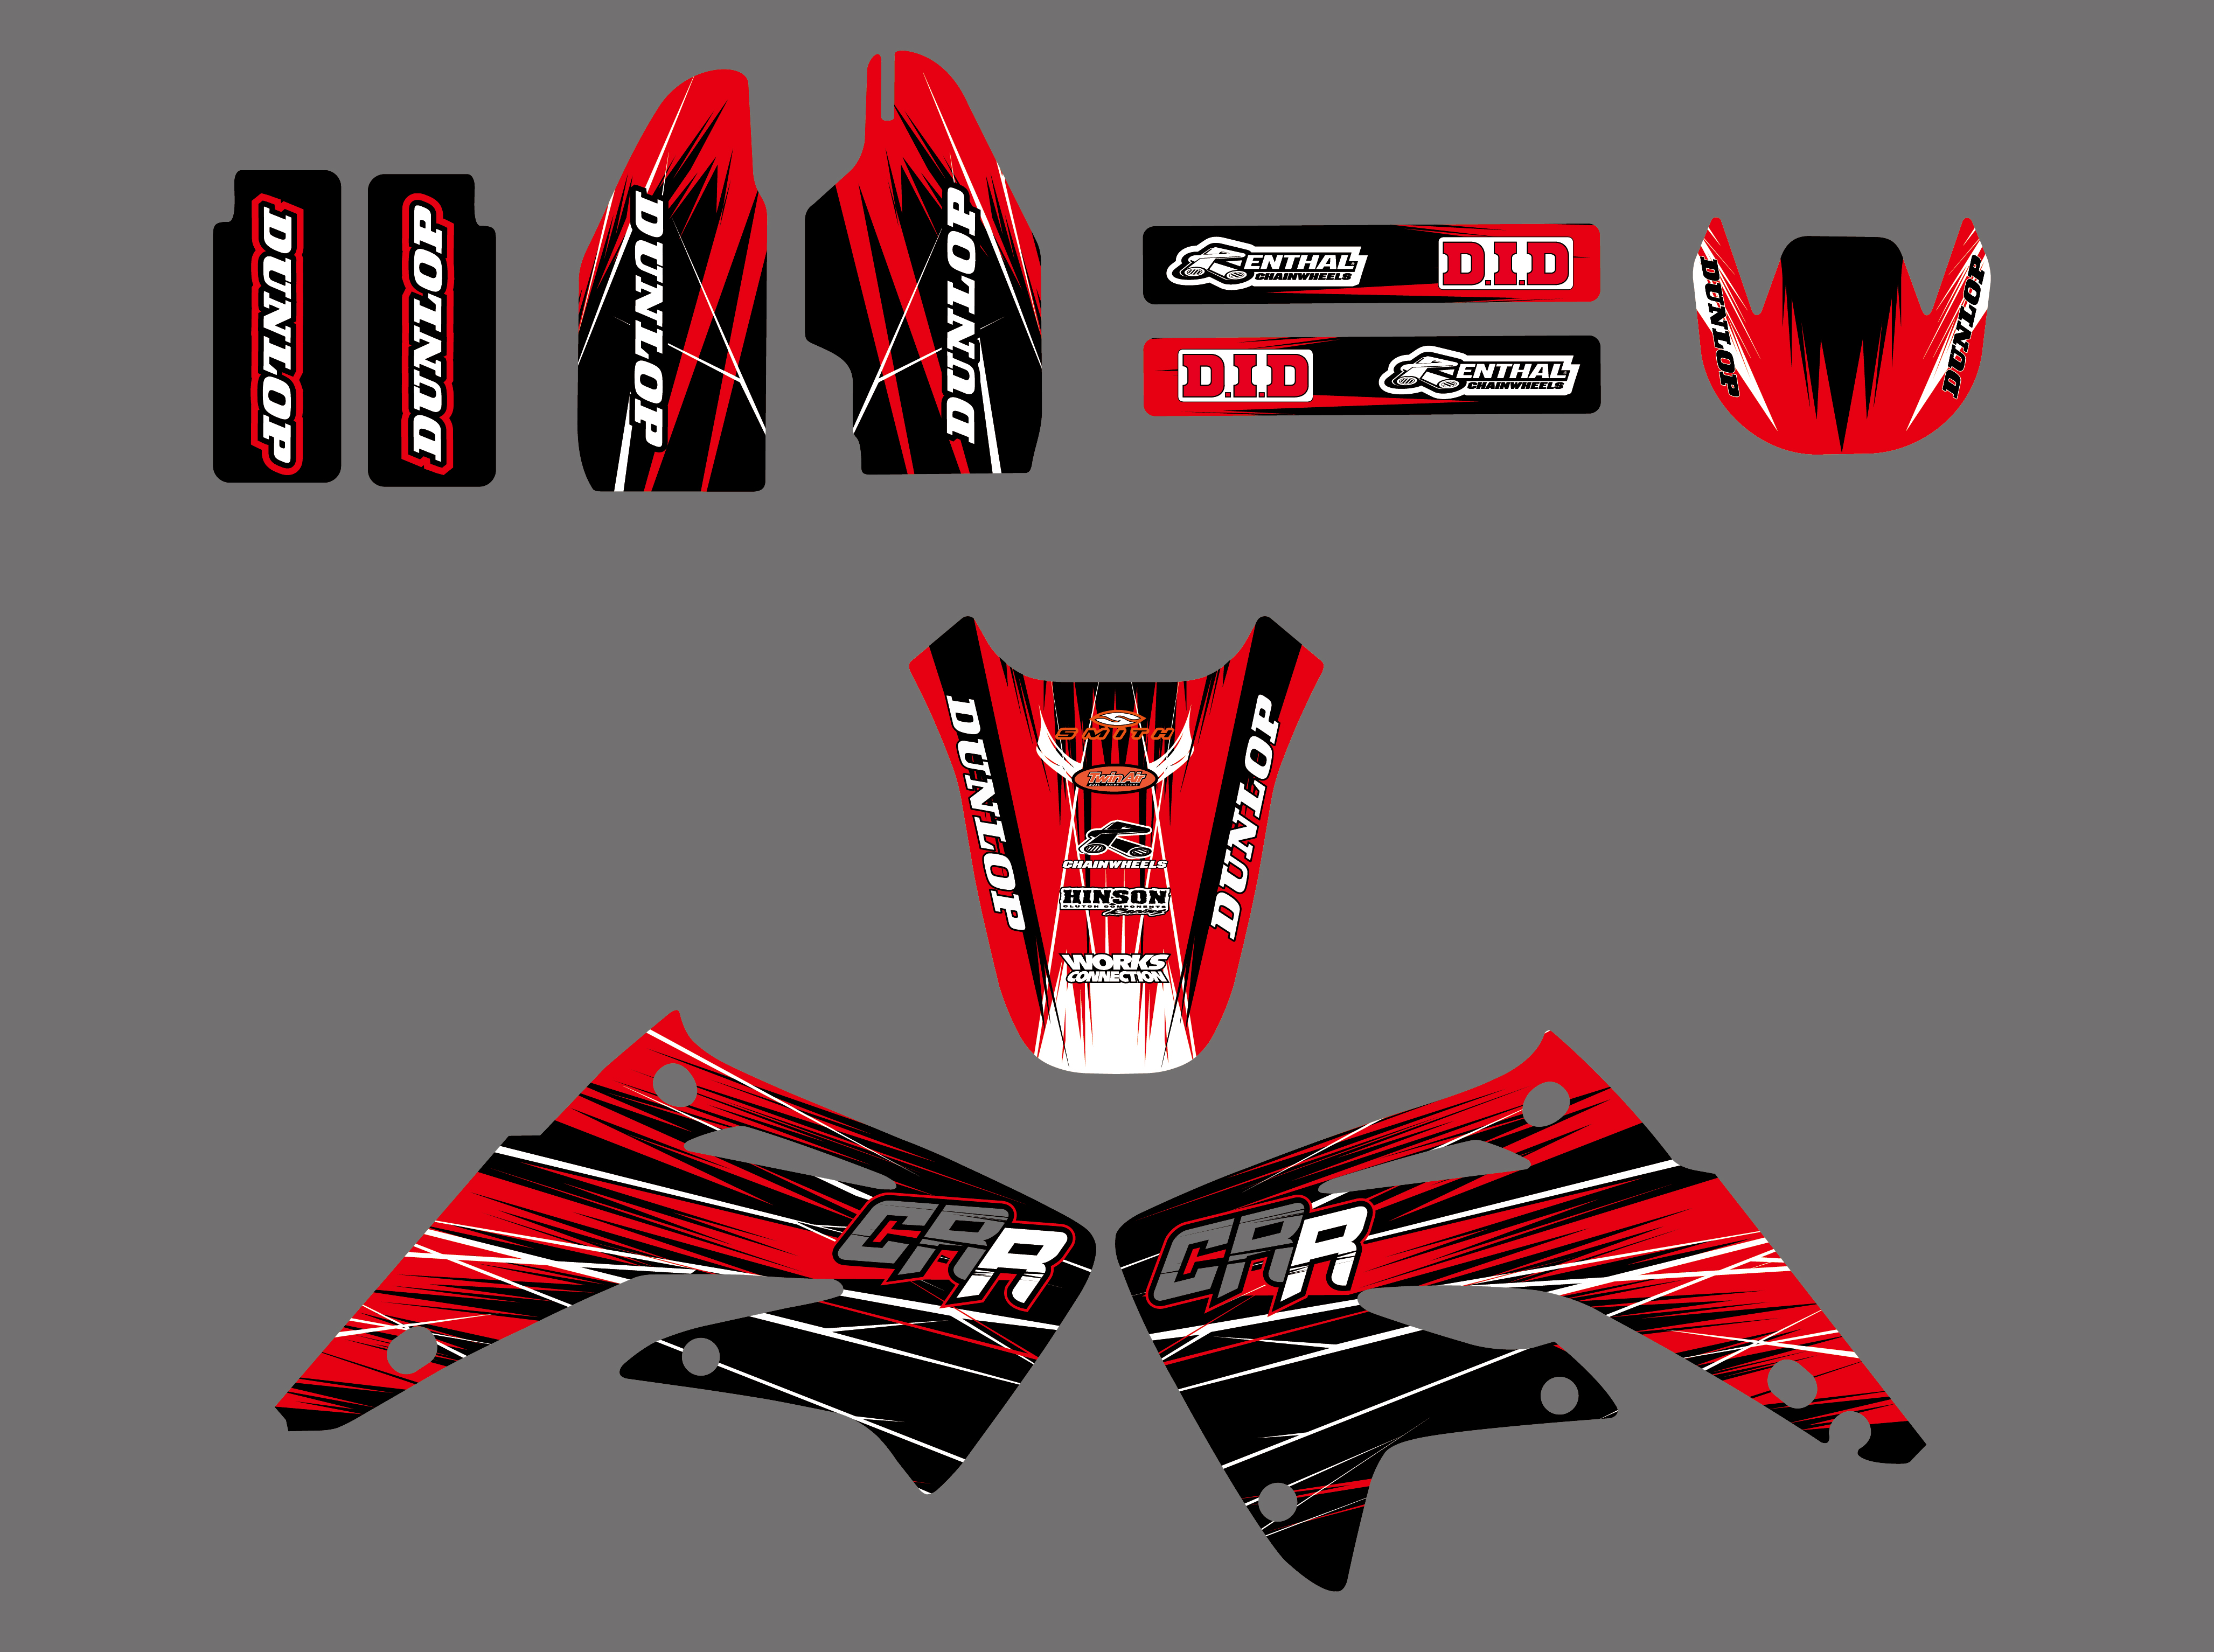 2003-2013 HONDA CR 85 STICKER GRAPHICS KIT CR85 LUCAS OIL WITH BACKGROUNDS